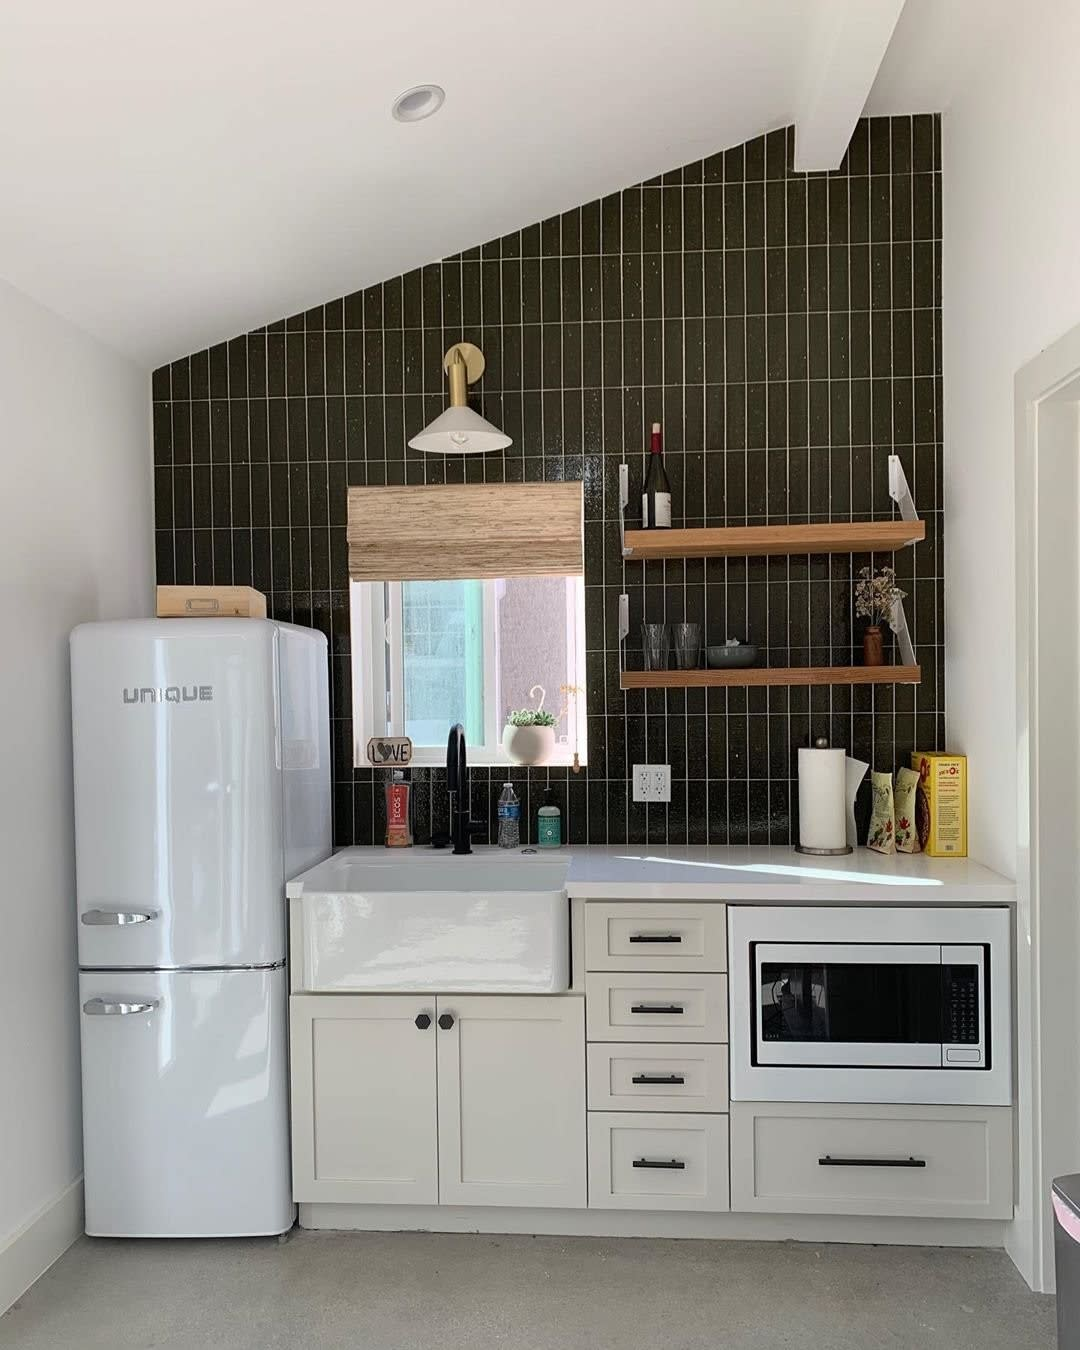 Compact Apartment Kitchen Ideas -cletile and concept_renovations